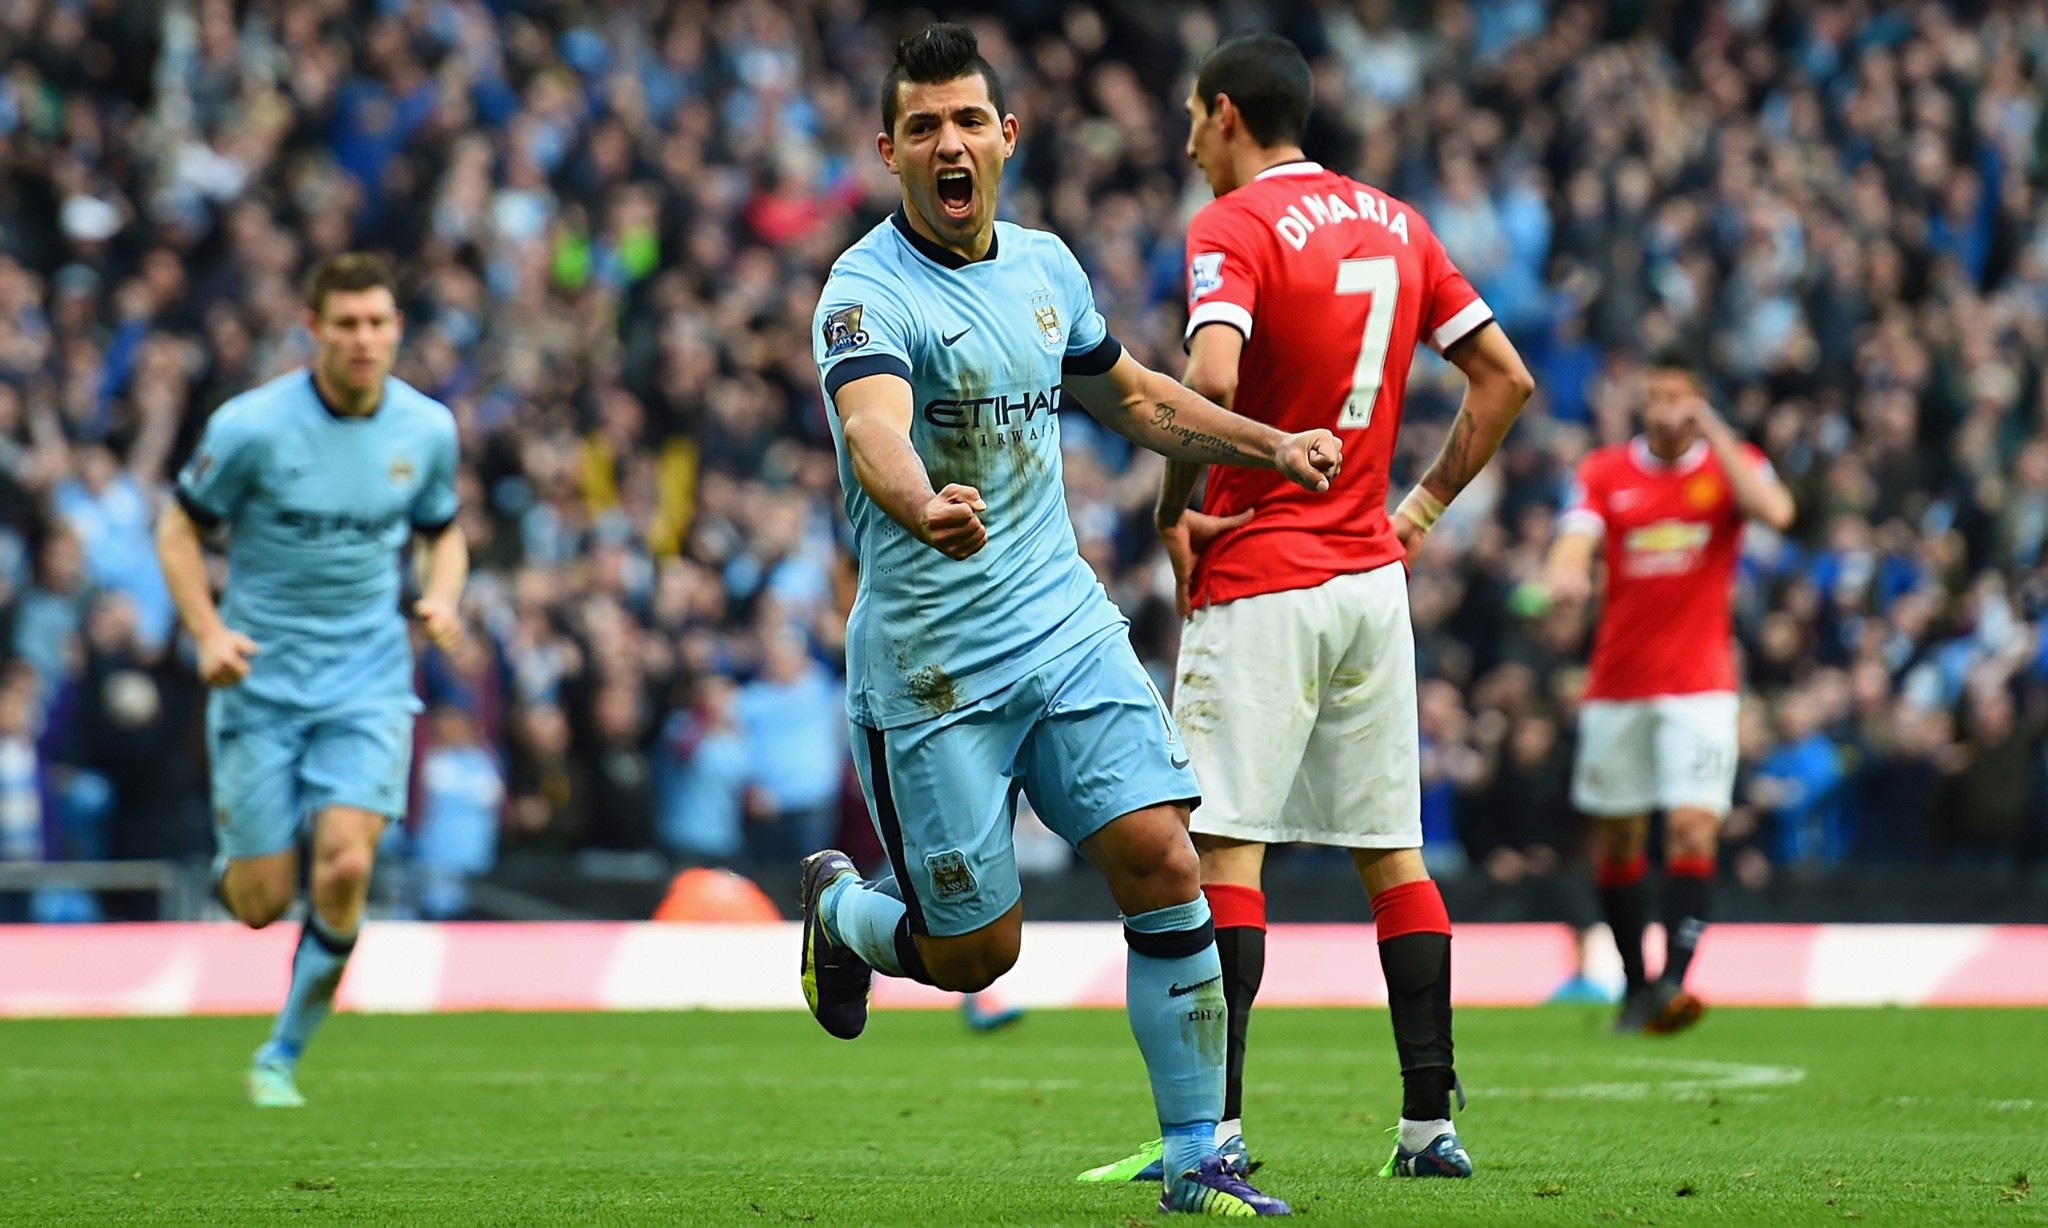 Manchester City 1-0 Manchester United